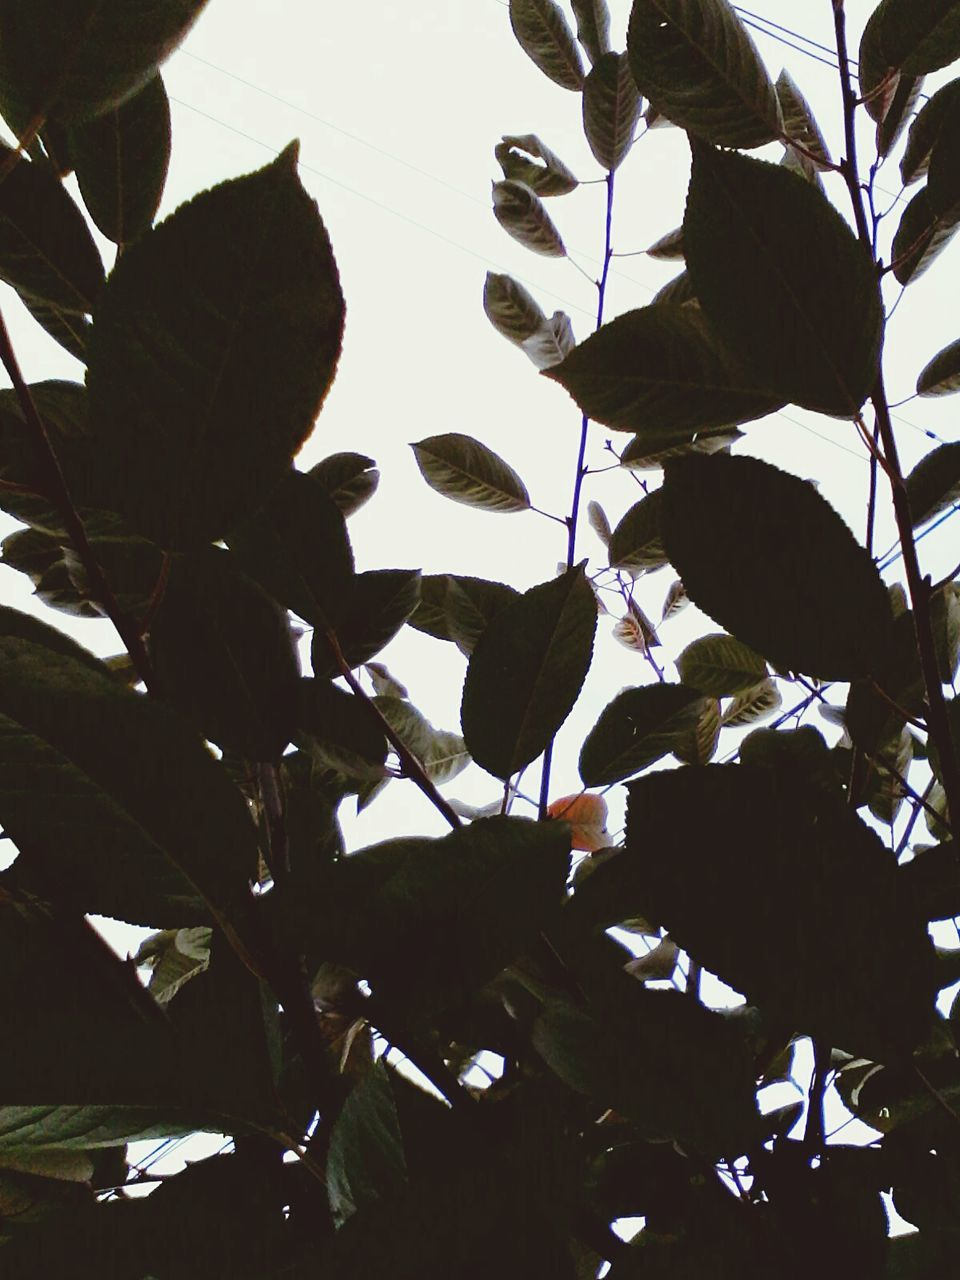 leaf, nature, no people, tree, growth, low angle view, branch, outdoors, day, beauty in nature, close-up, sky